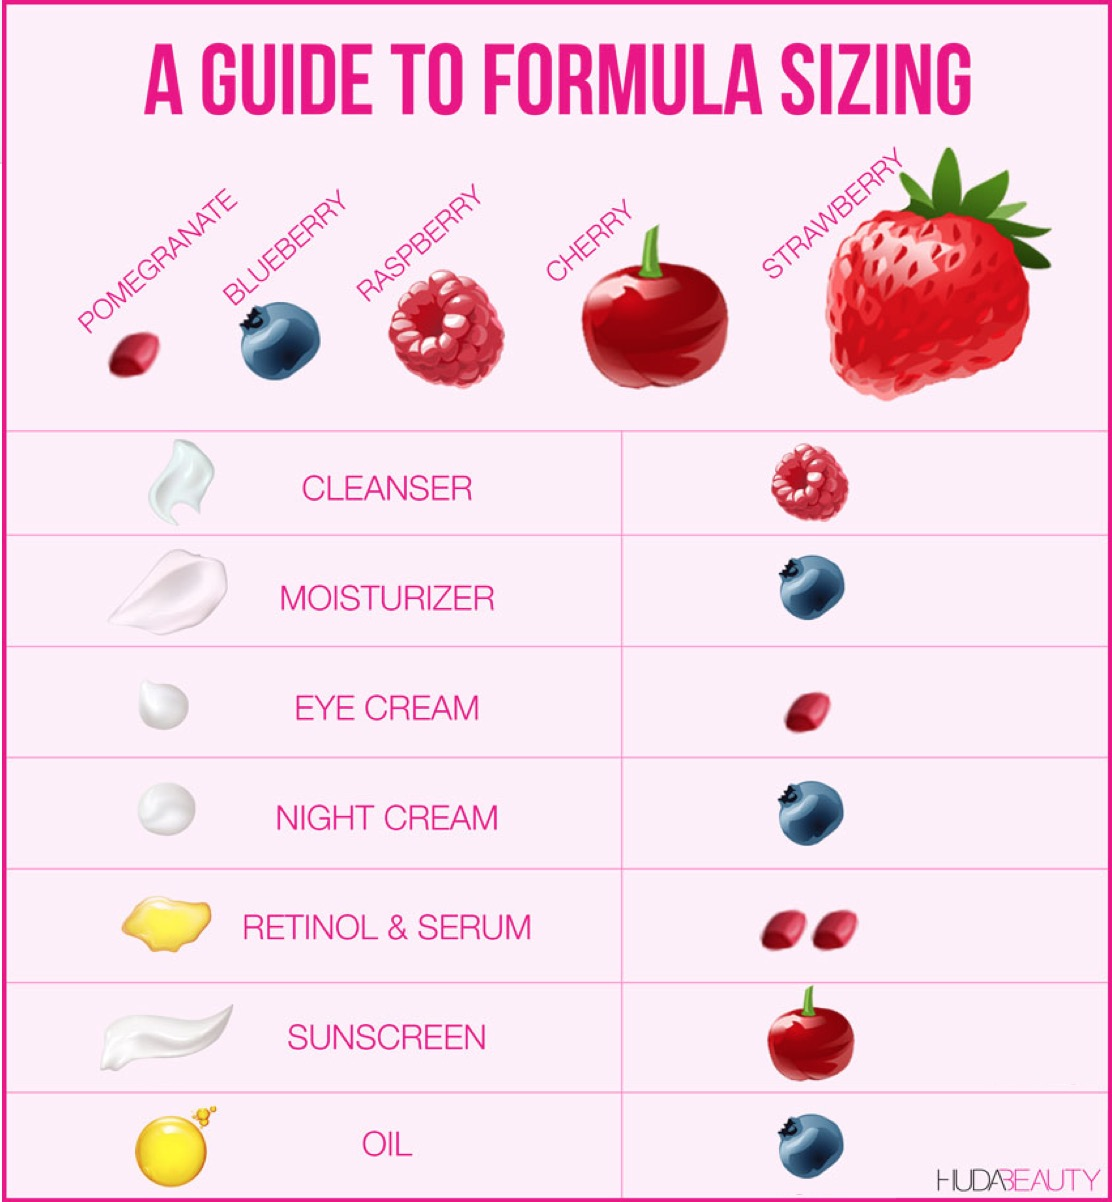 a guide to formula sizing